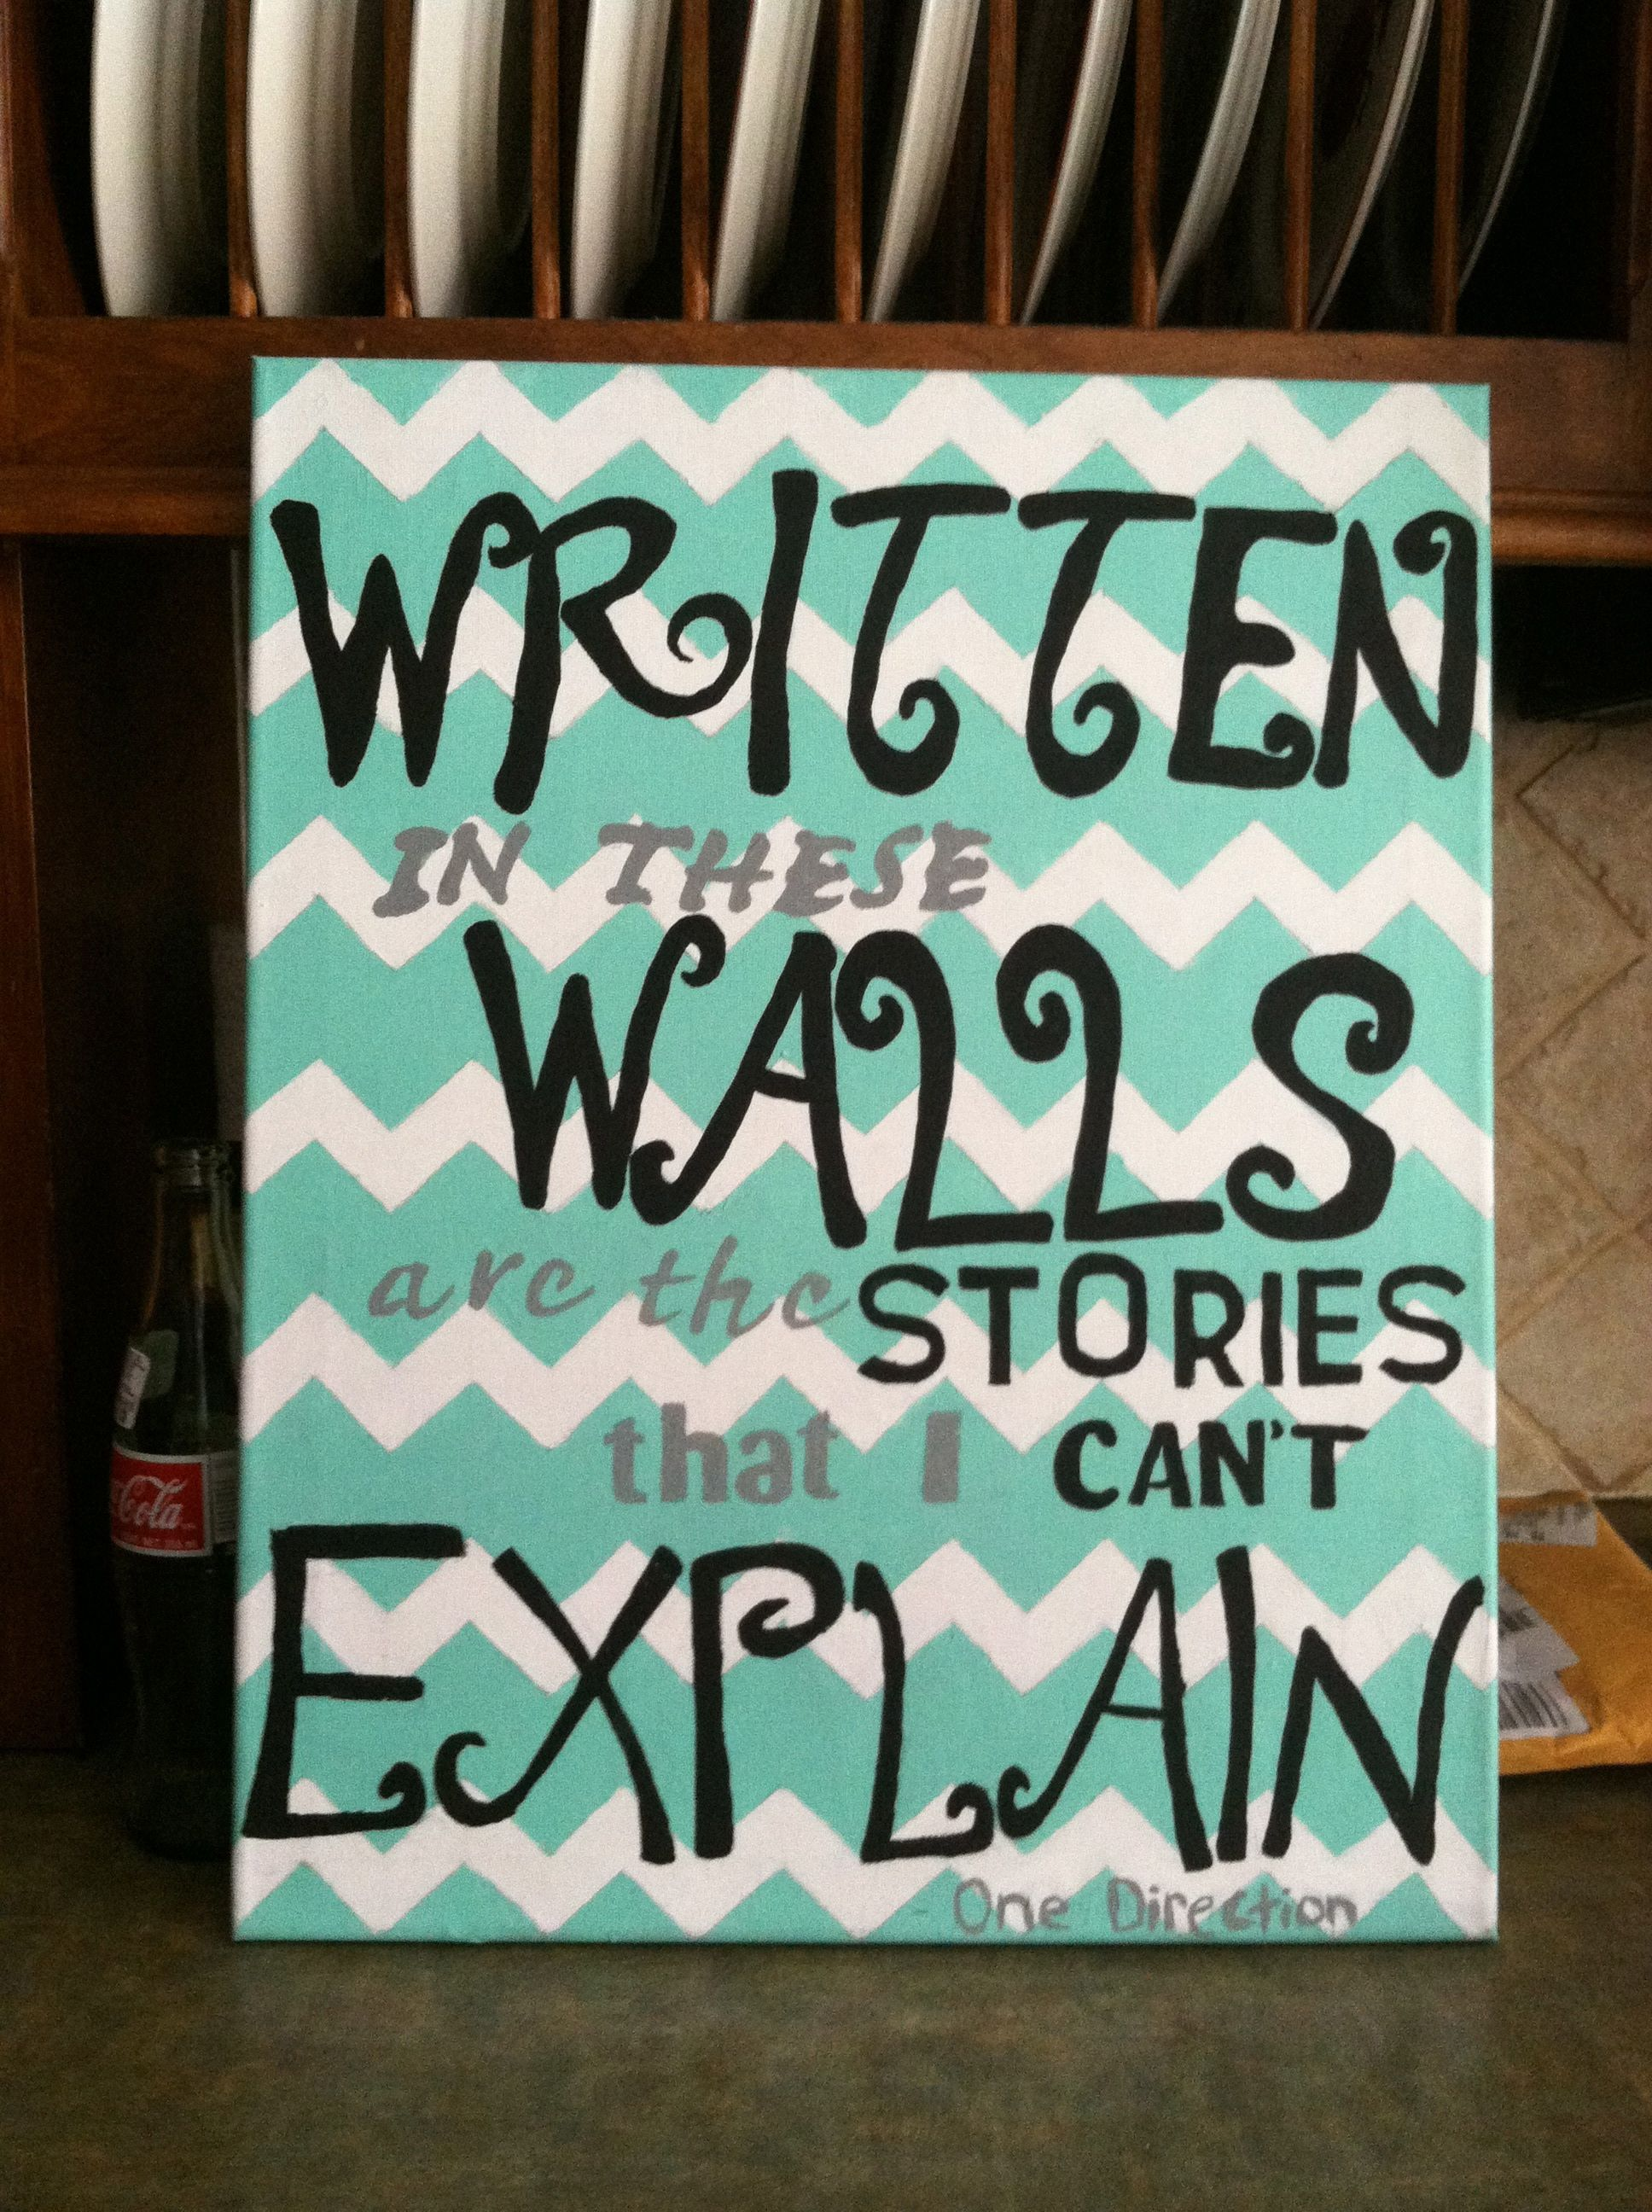 One Direction lyric on a canvas story of my life ...